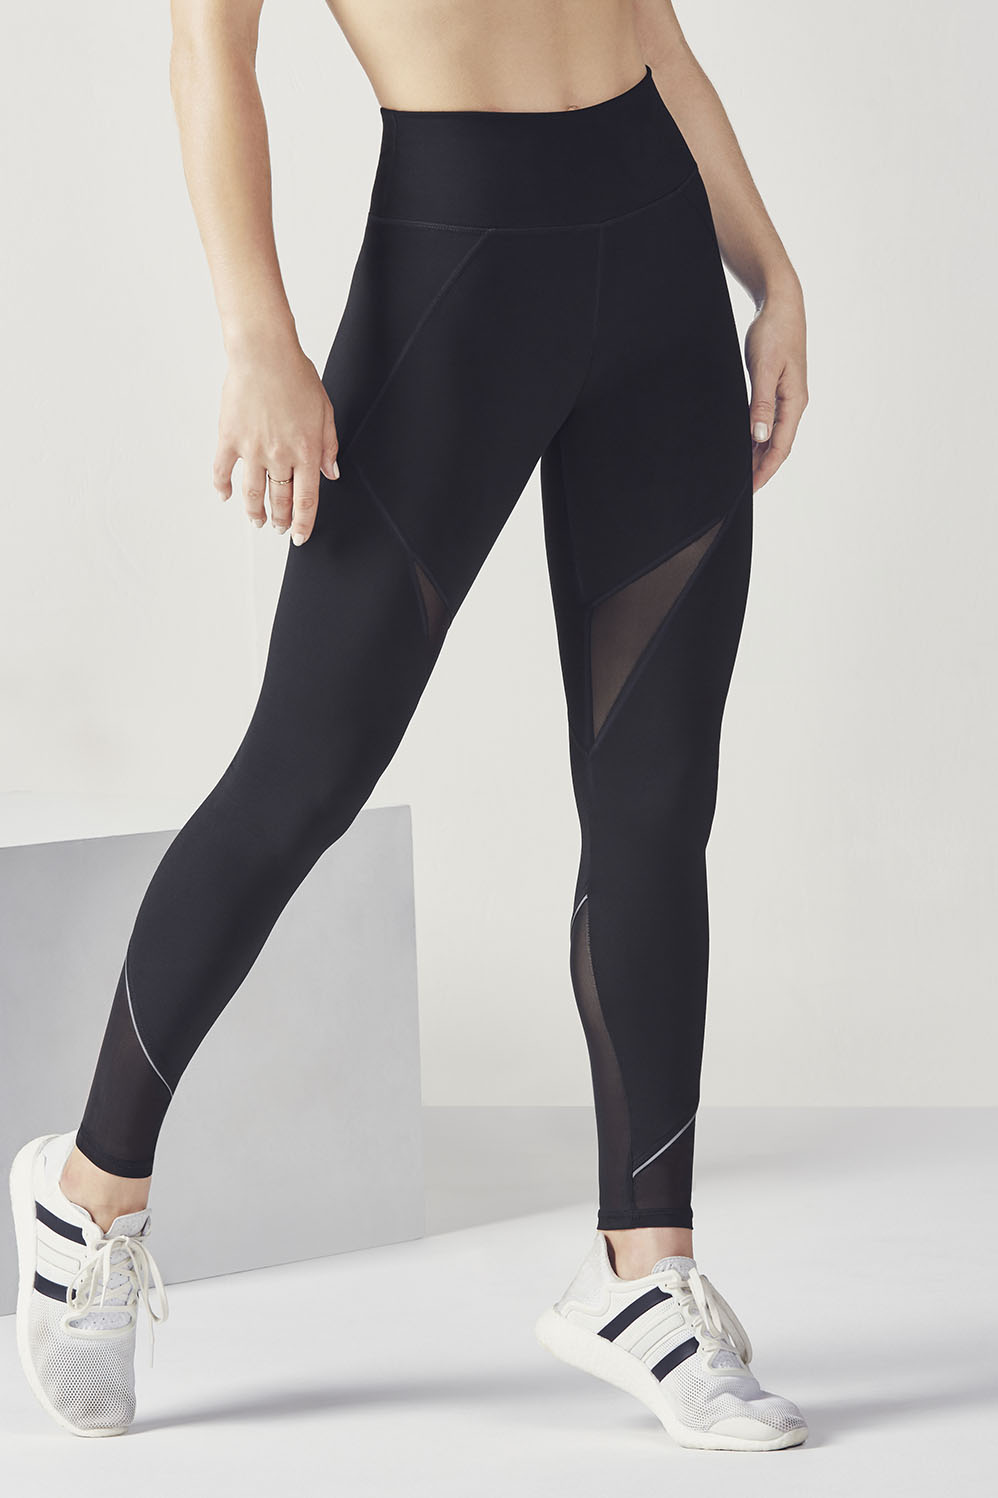 Fabletics Tight High-Waisted Mesh Powerhold Legging Womens Black Size S